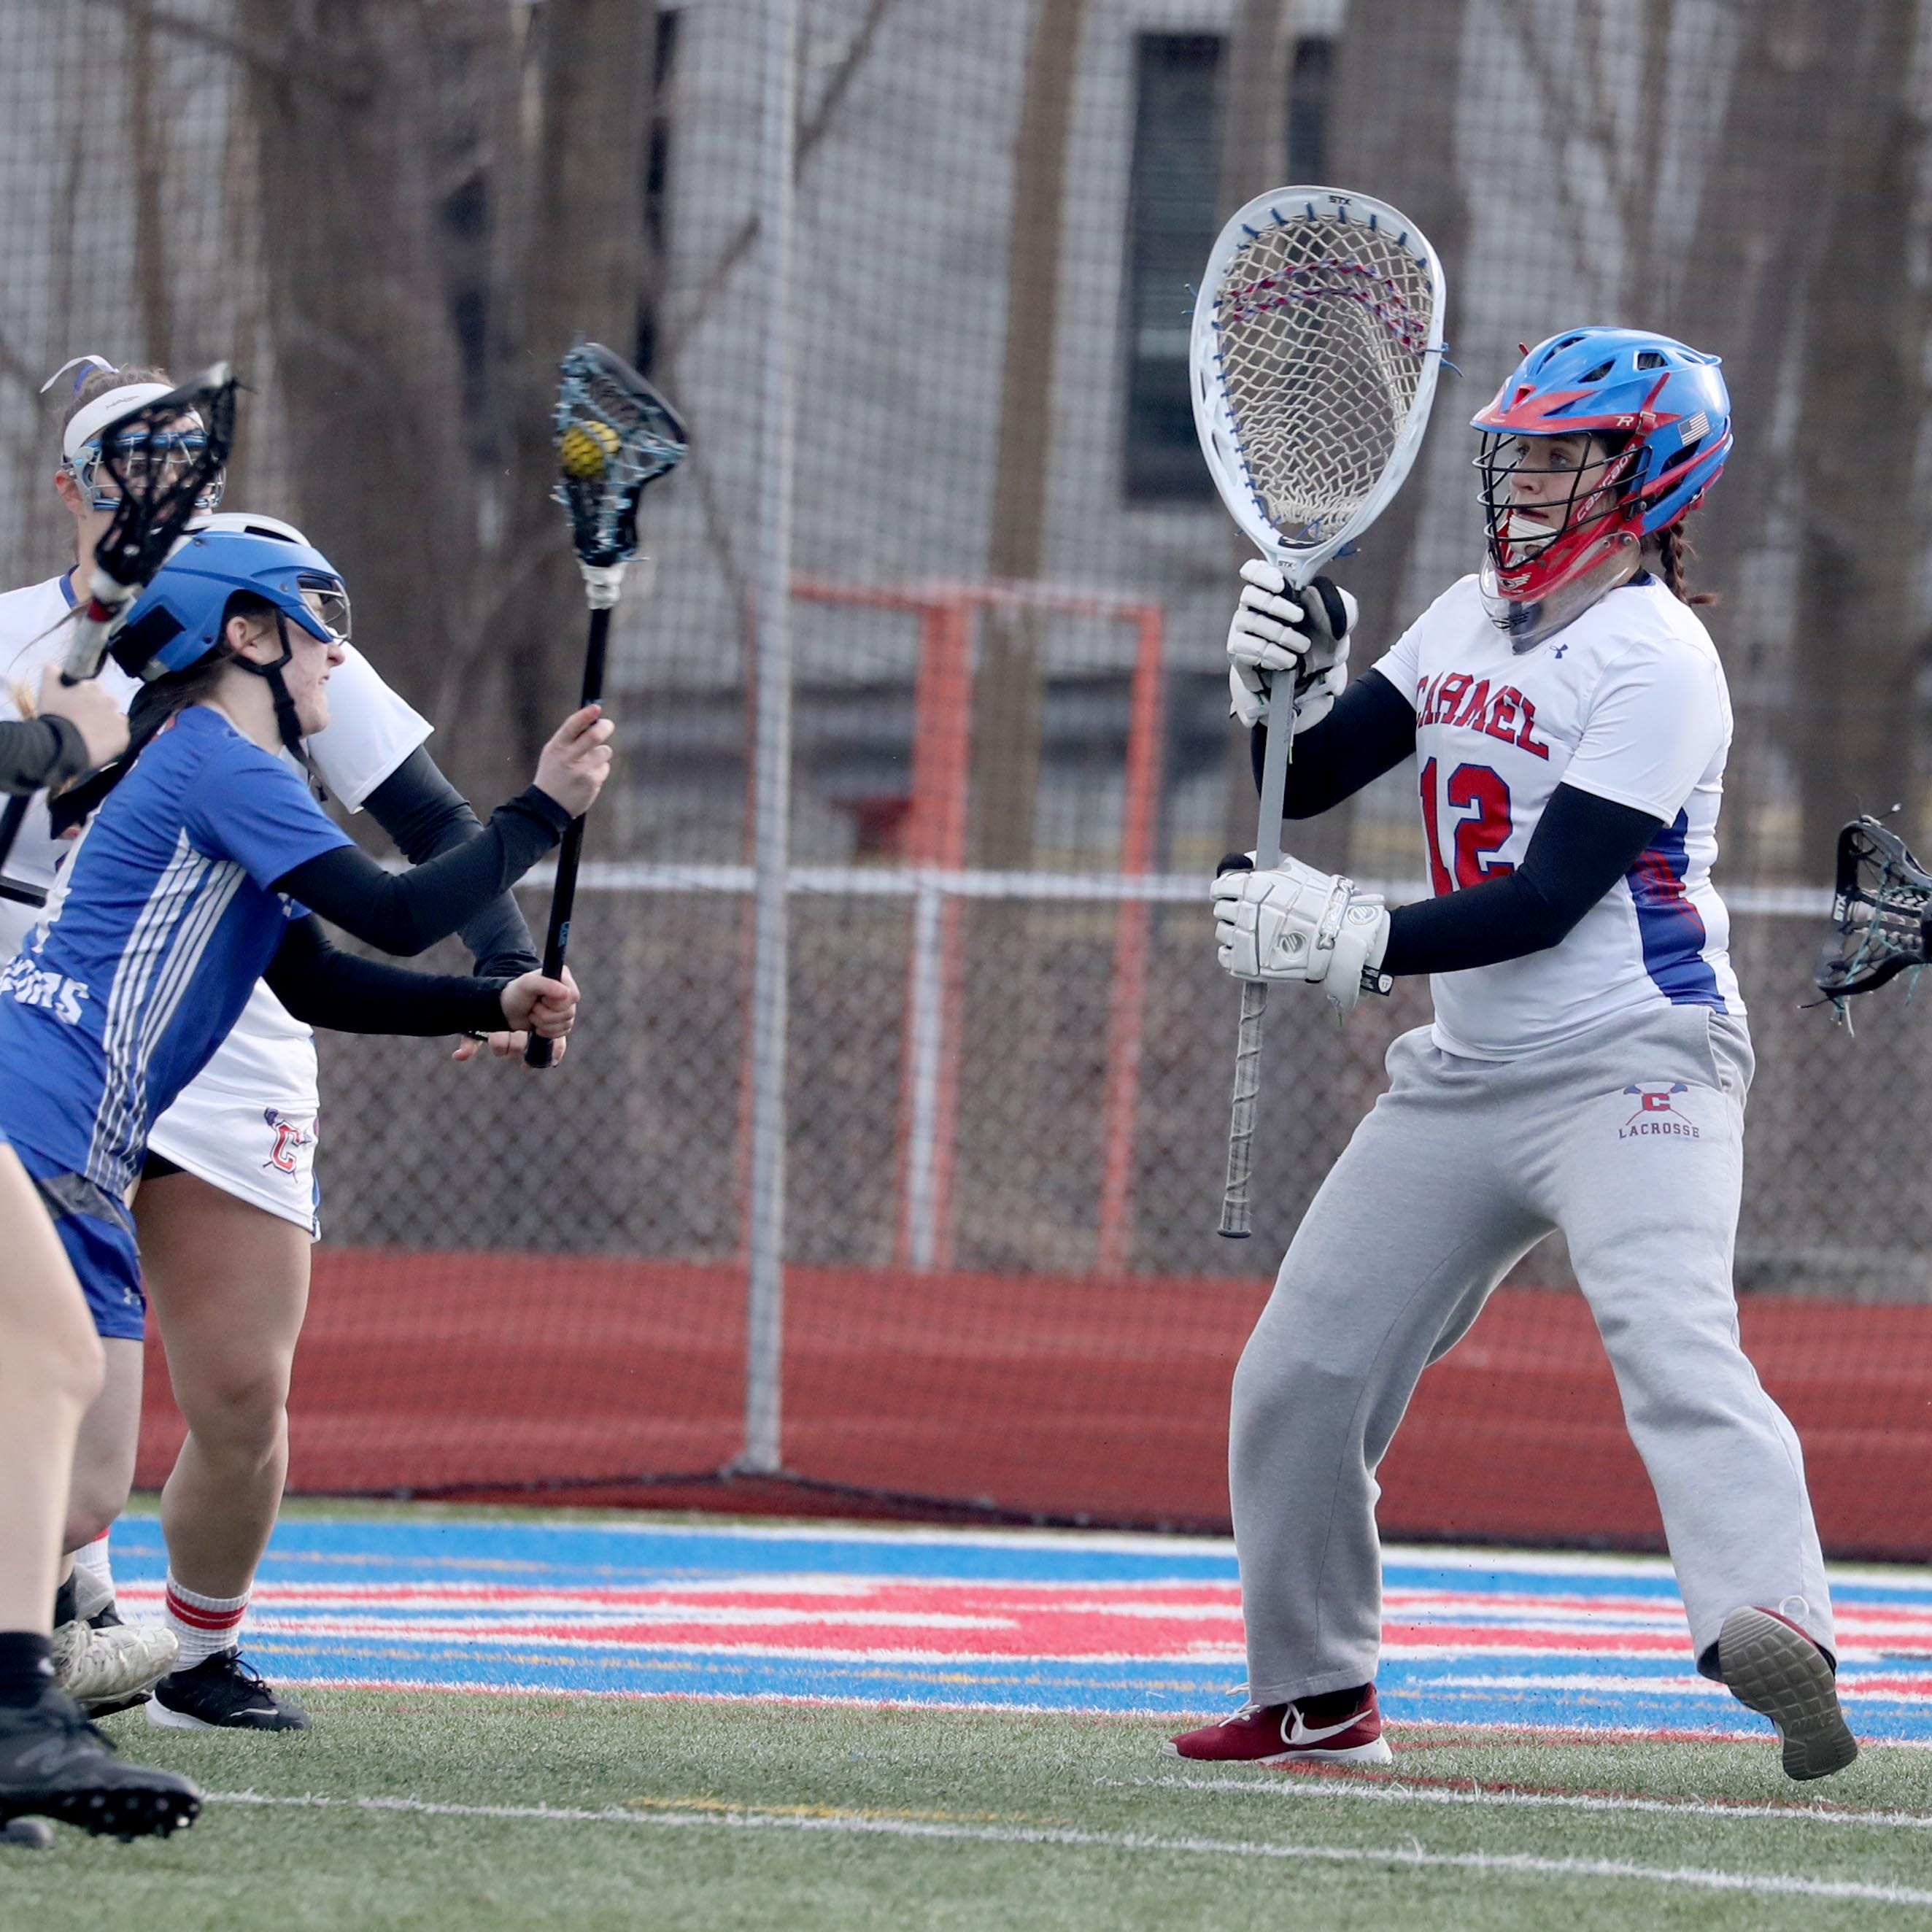 Country over sports: Carmel goalie foregoes college lacrosse for the Marines